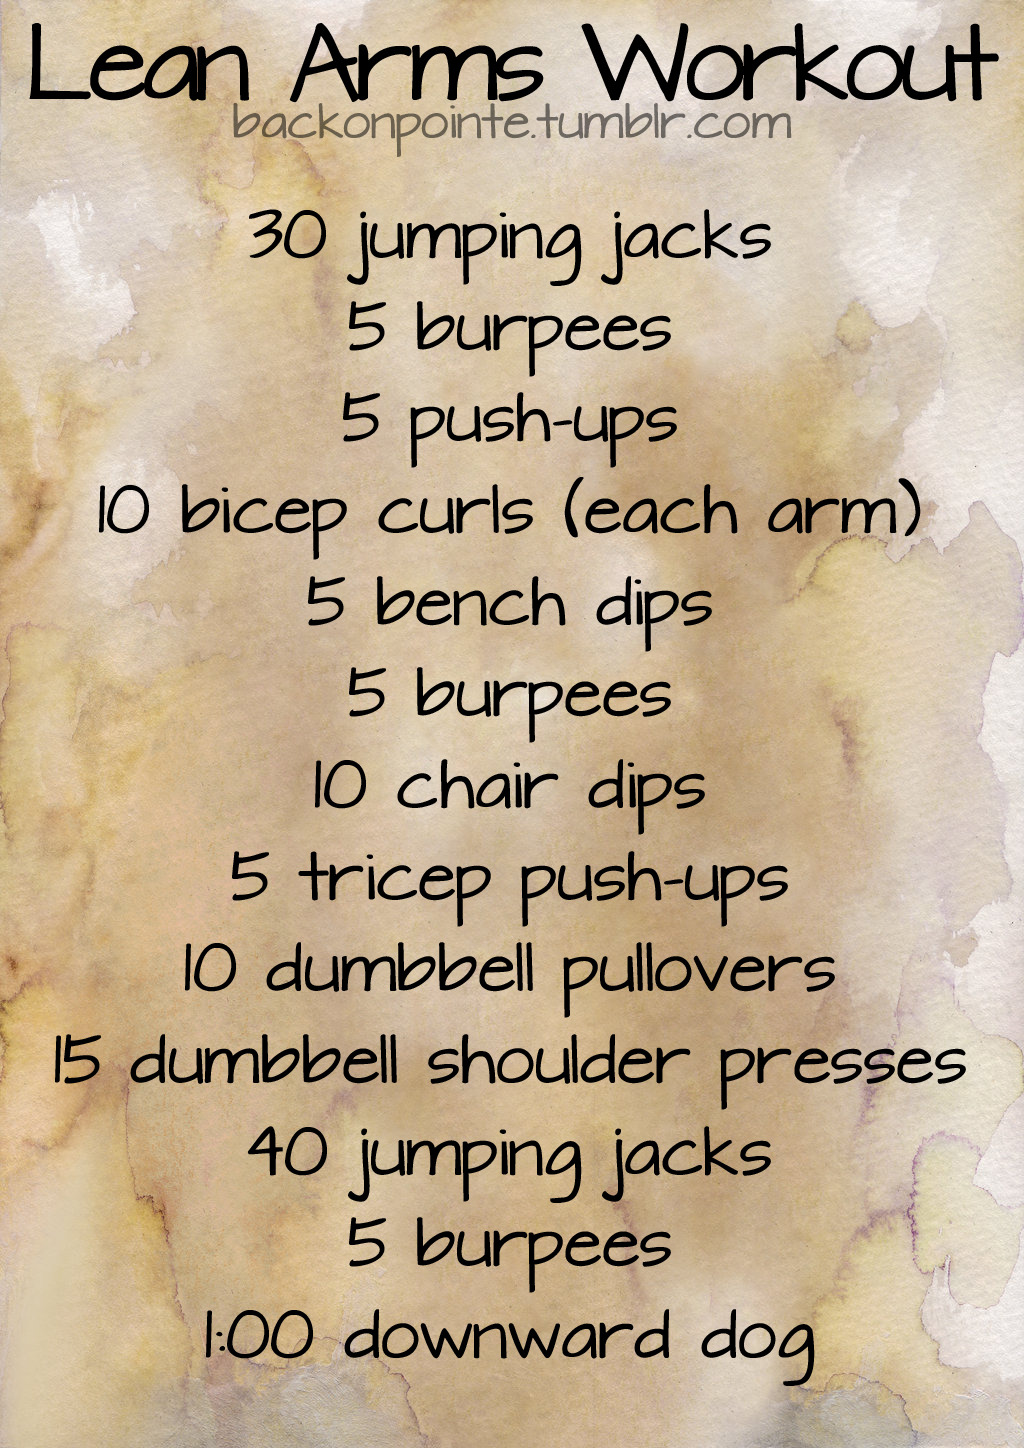 Here's another workout for lean arms that requires more use of weights than my first workout.